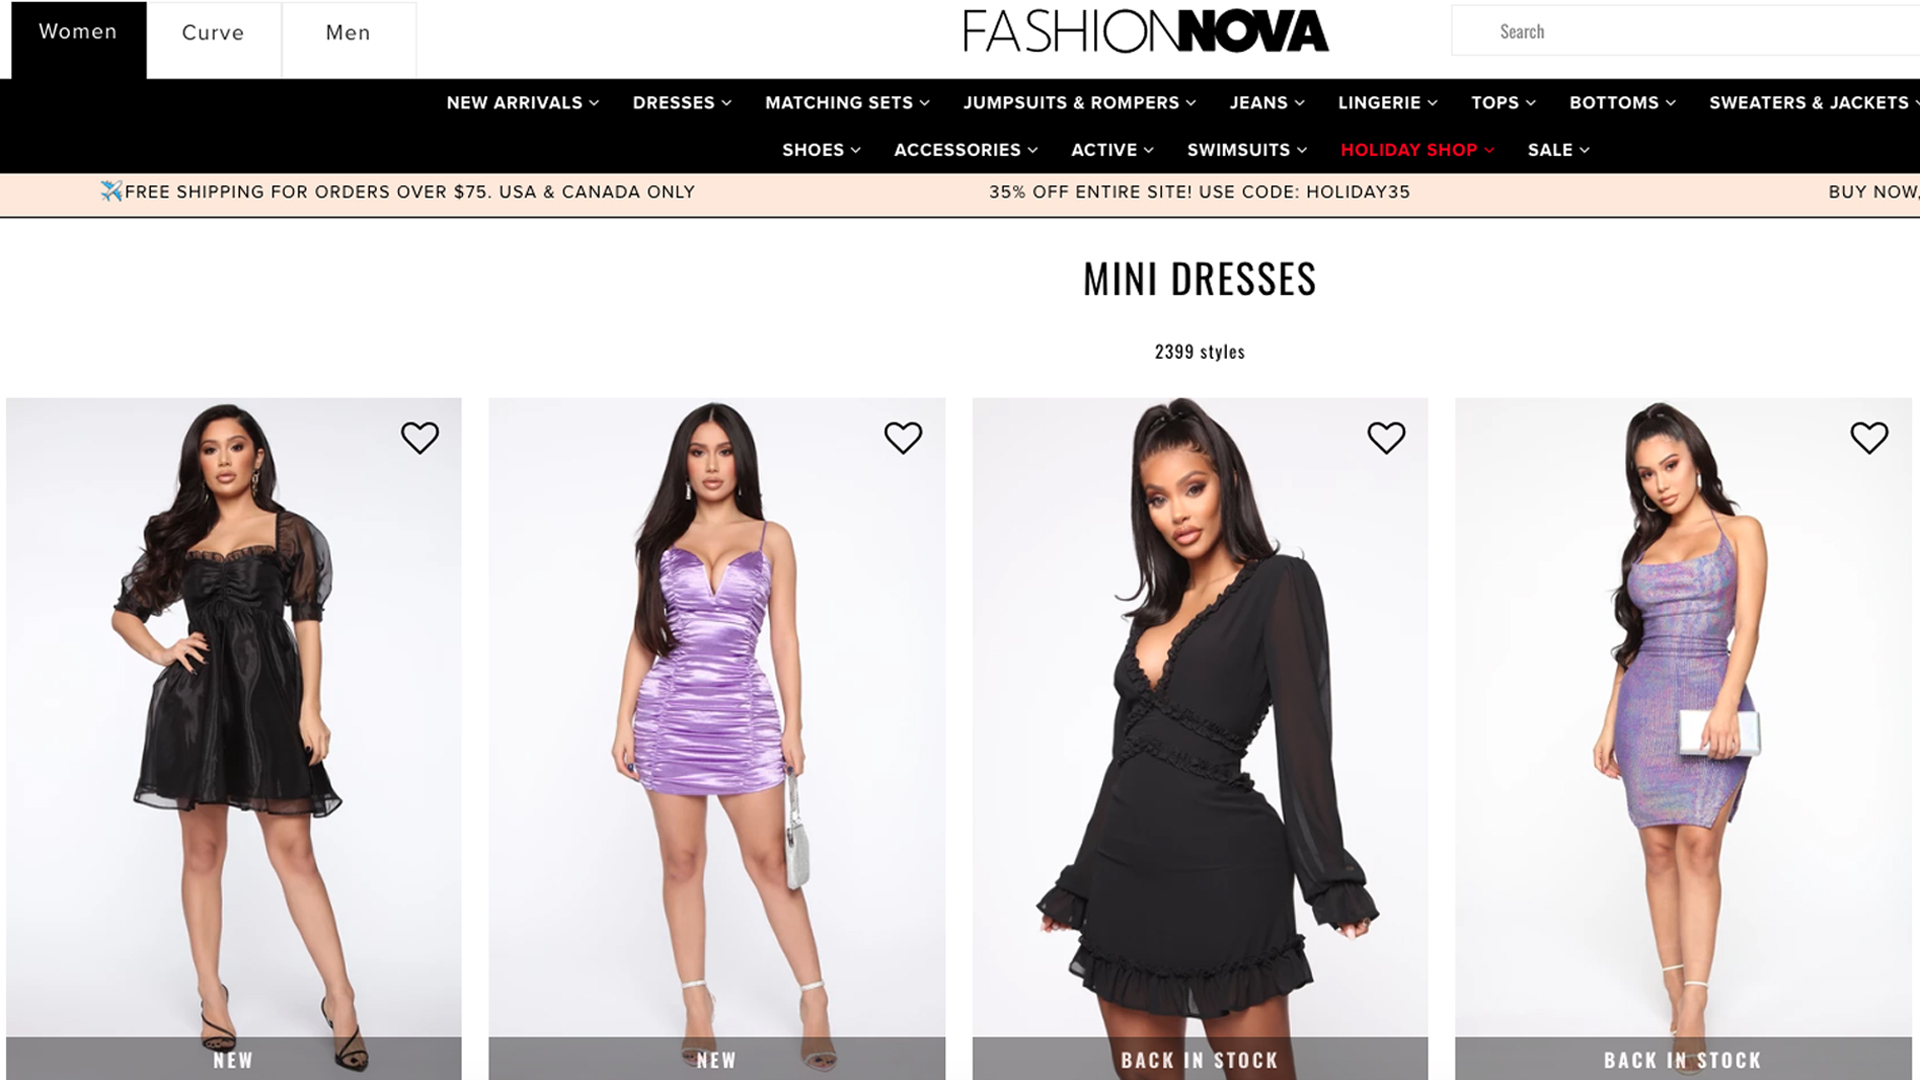 Under Fire For Labor Policies Socal Based Fashion Nova Settles 1 75m Lawsuit Over Shipping Delays And Returns Ktla